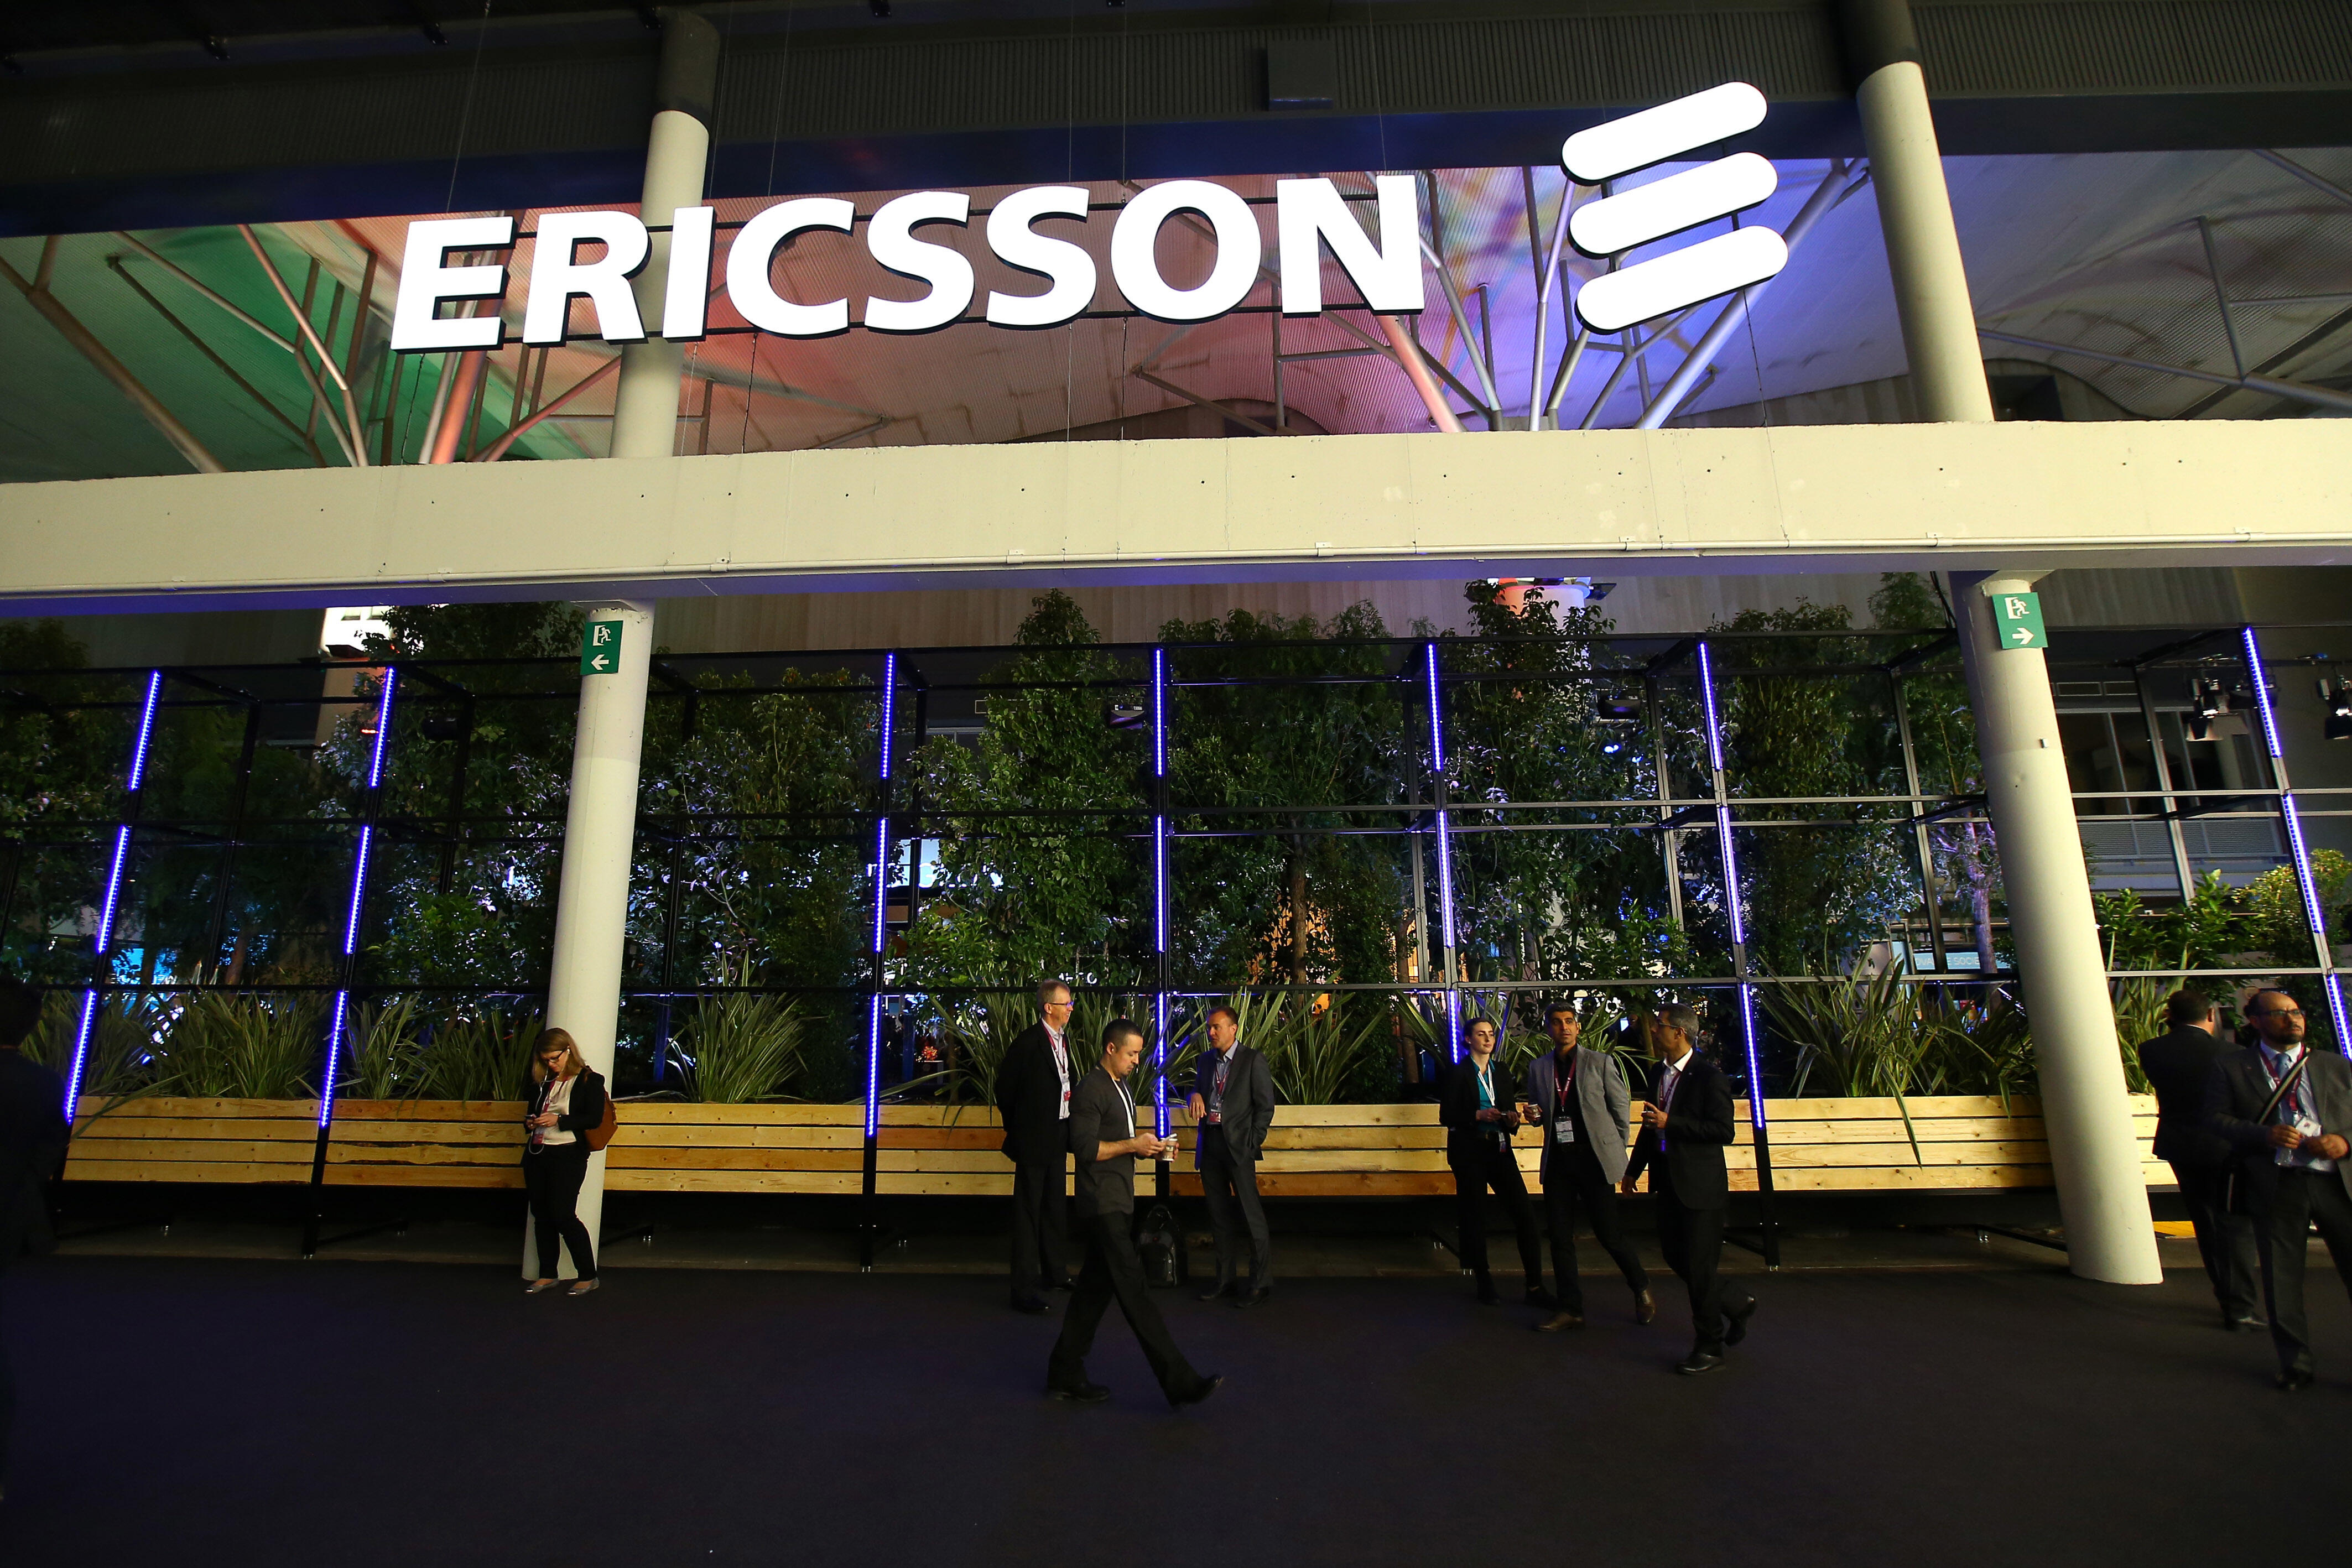 Ericsson signage on a building